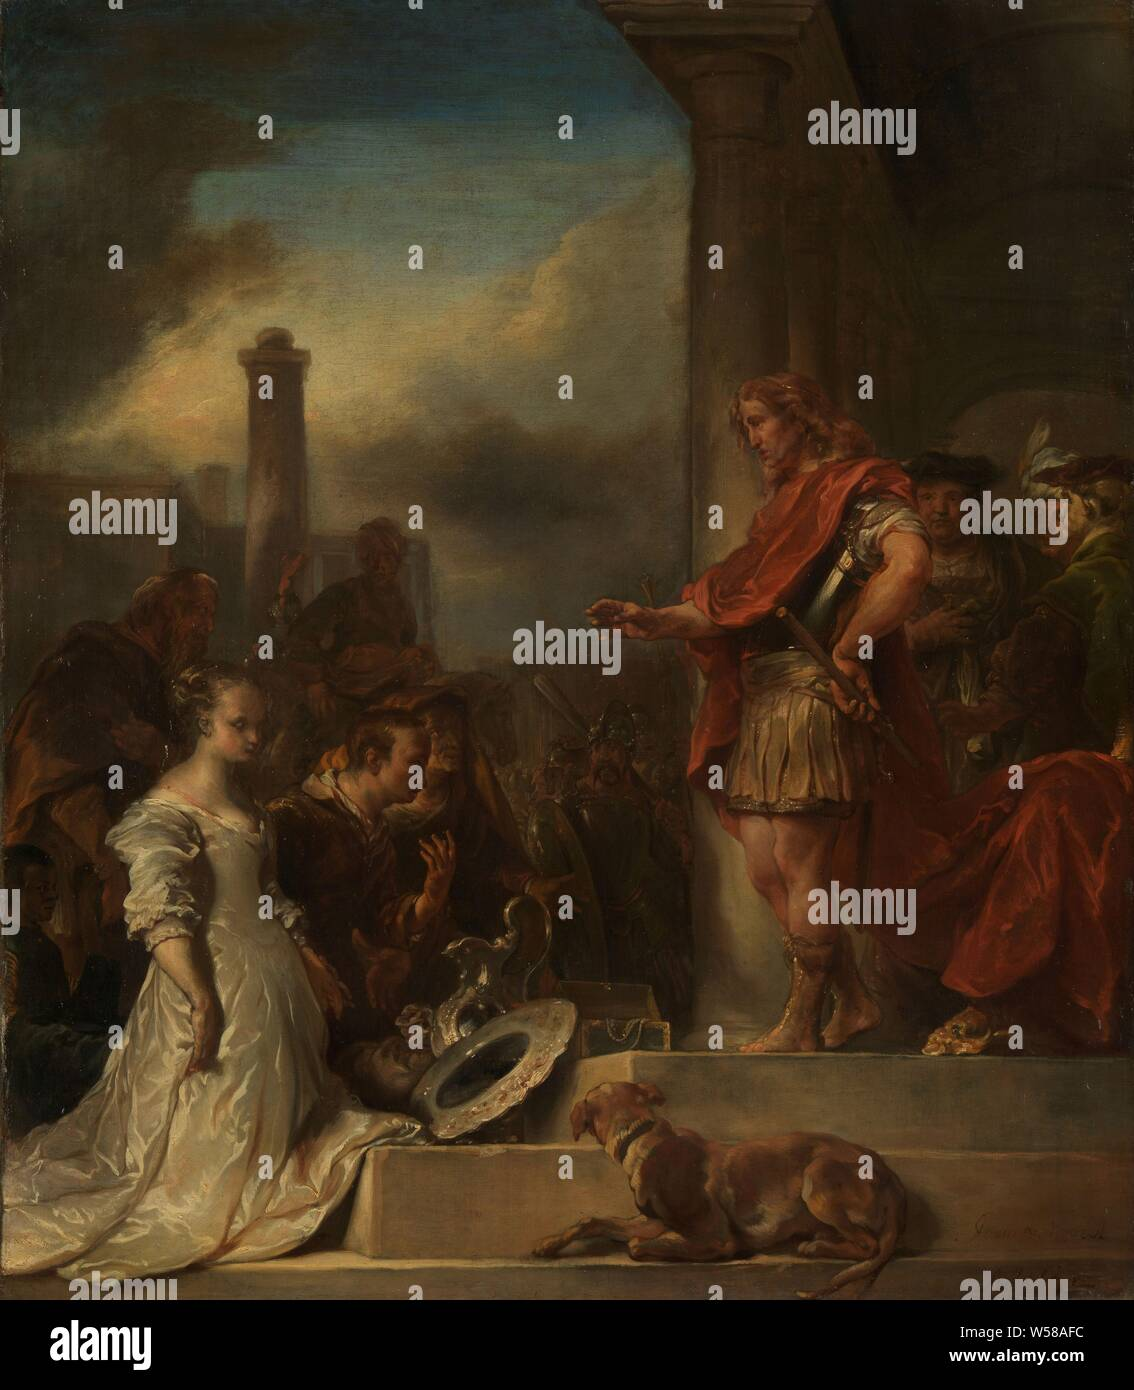 The continence of Scipio, The magnanimity of Scipio. The man and the woman kneel before the general Scipio who reunites the couple with a hand gesture. Precious crockery is on the stairs. On the right the advisers of Scipio, in the background soldiers and the buildings of the city., Jan van Noordt (1623-1676), 1672, canvas, oil paint (paint), h 103 cm × w 88 cm d 6.5 cm Stock Photo